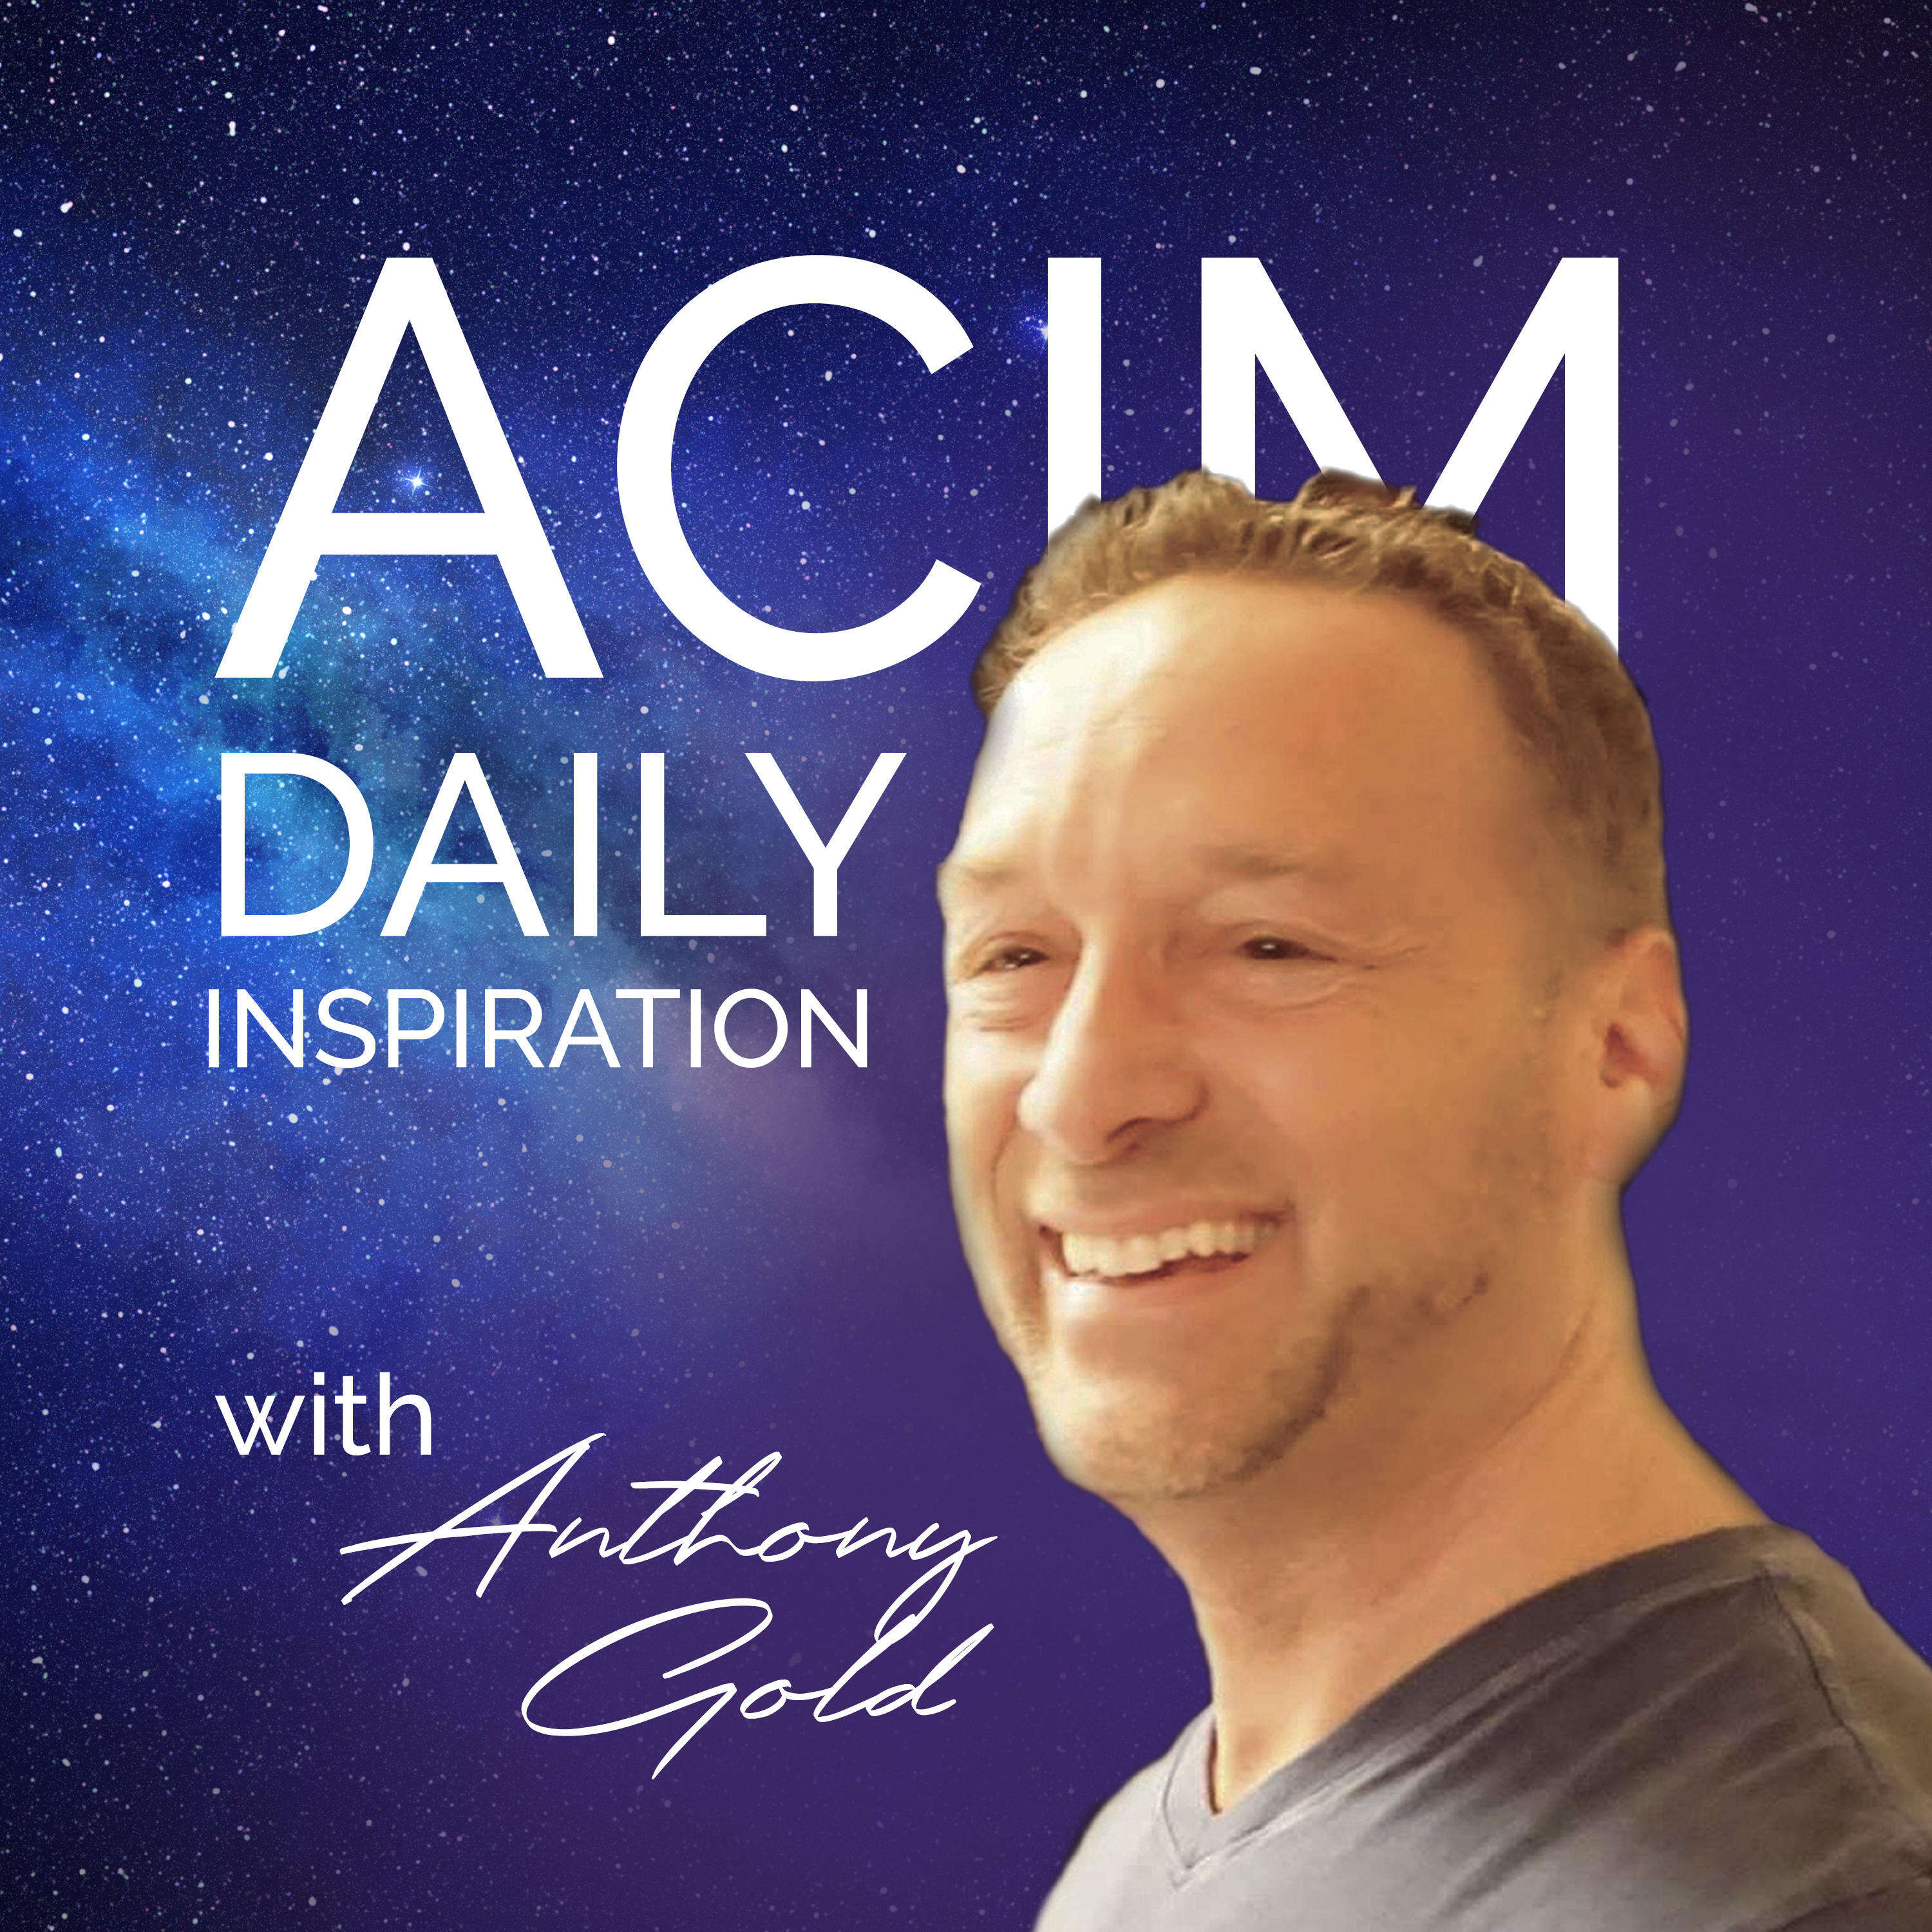 ACIM Daily Inspiration with Anthony Gold